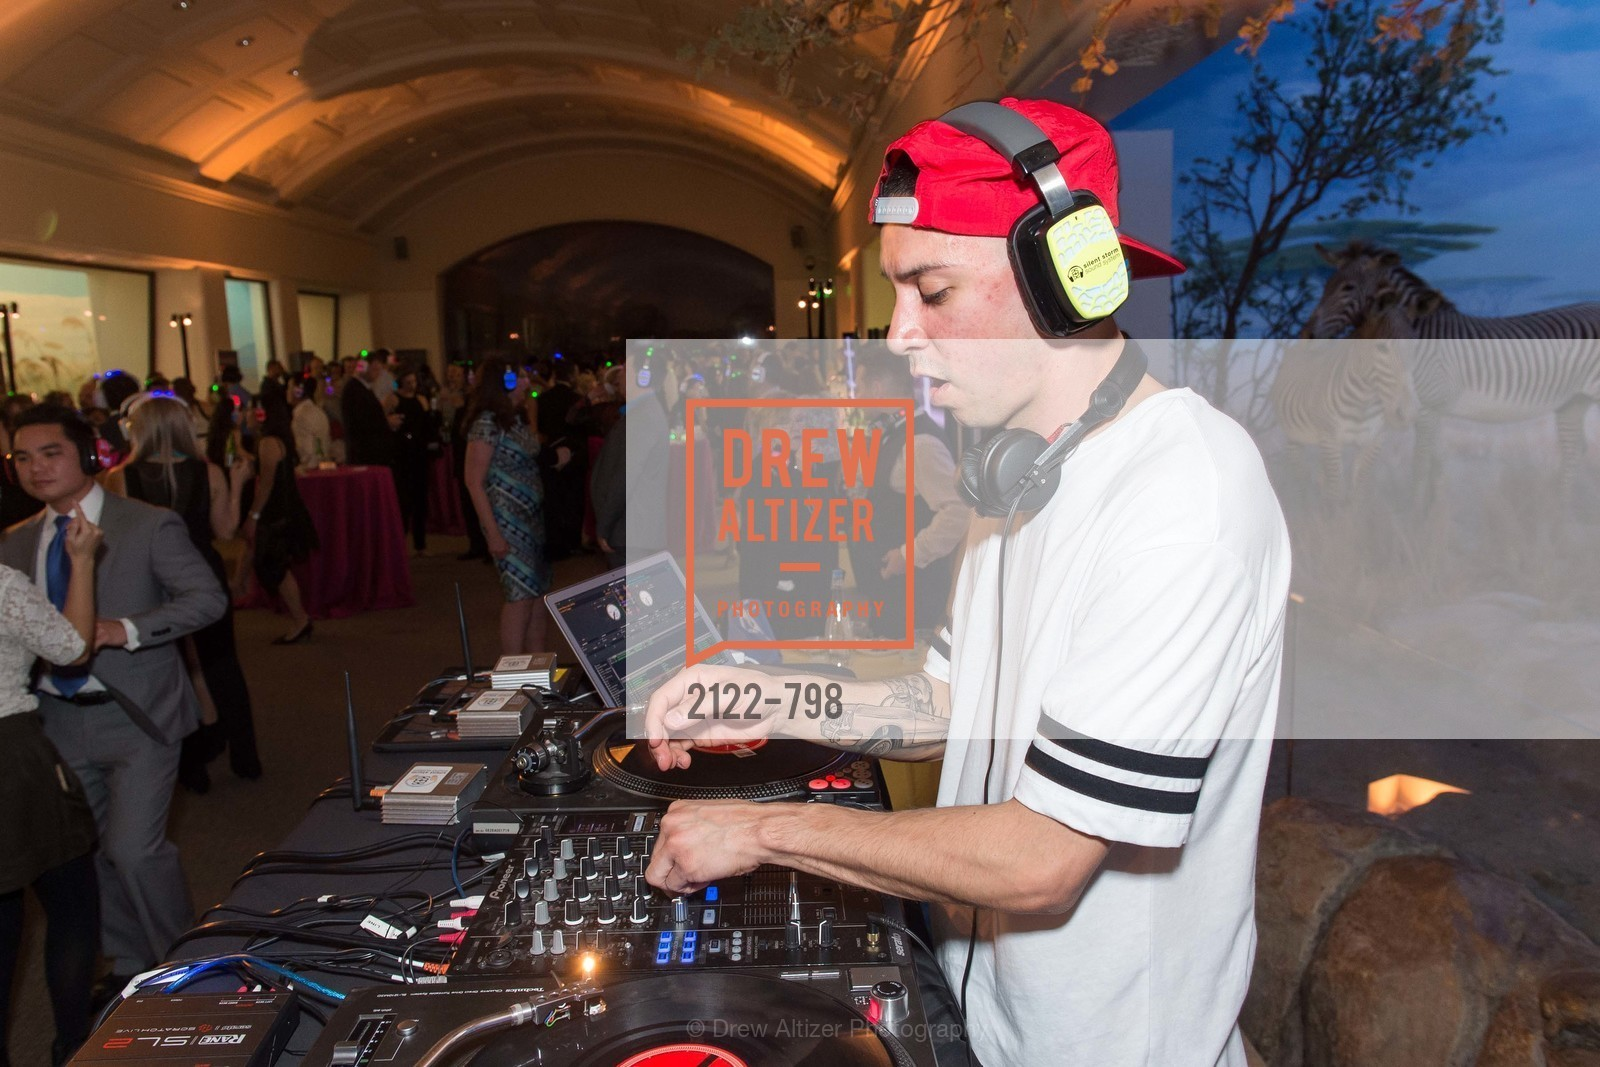 Dj, CALIFORNIA ACADEMY OF SCIENCES - Big Bang Gala 2015, US, April 23rd, 2015,Drew Altizer, Drew Altizer Photography, full-service agency, private events, San Francisco photographer, photographer california